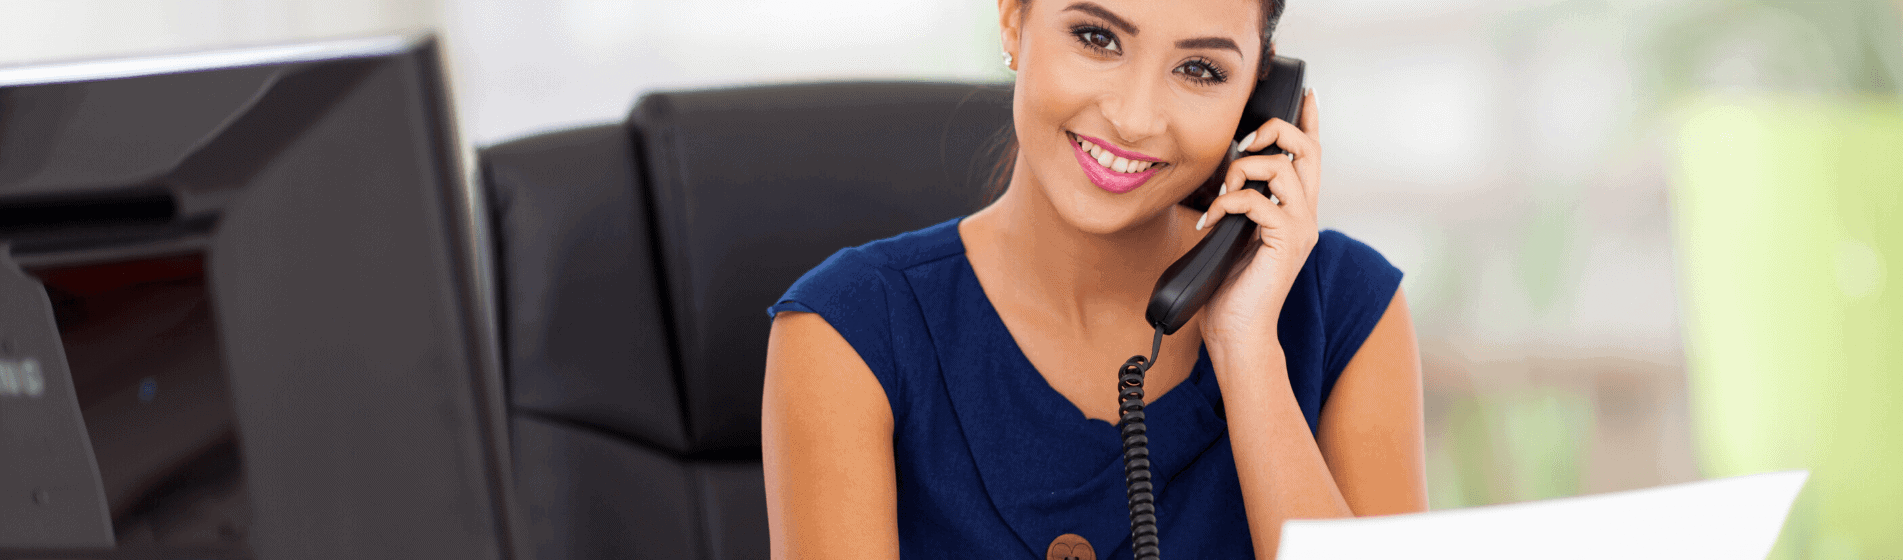 How to hire a virtual assistant: 3 tips to increase productivity